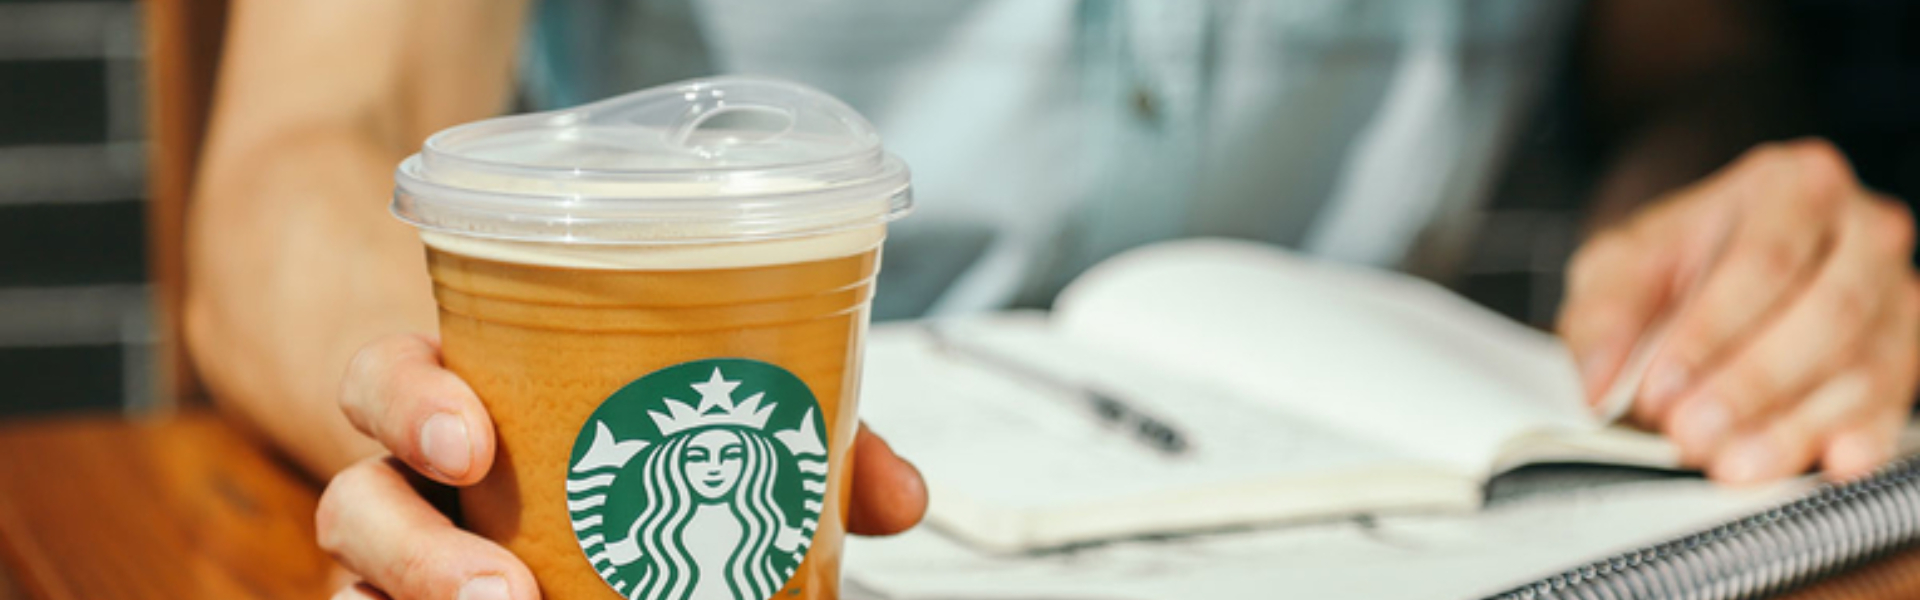 Starbucks se suma a la defensa del medio ambiente y le dice adiós a los popotes-NATION